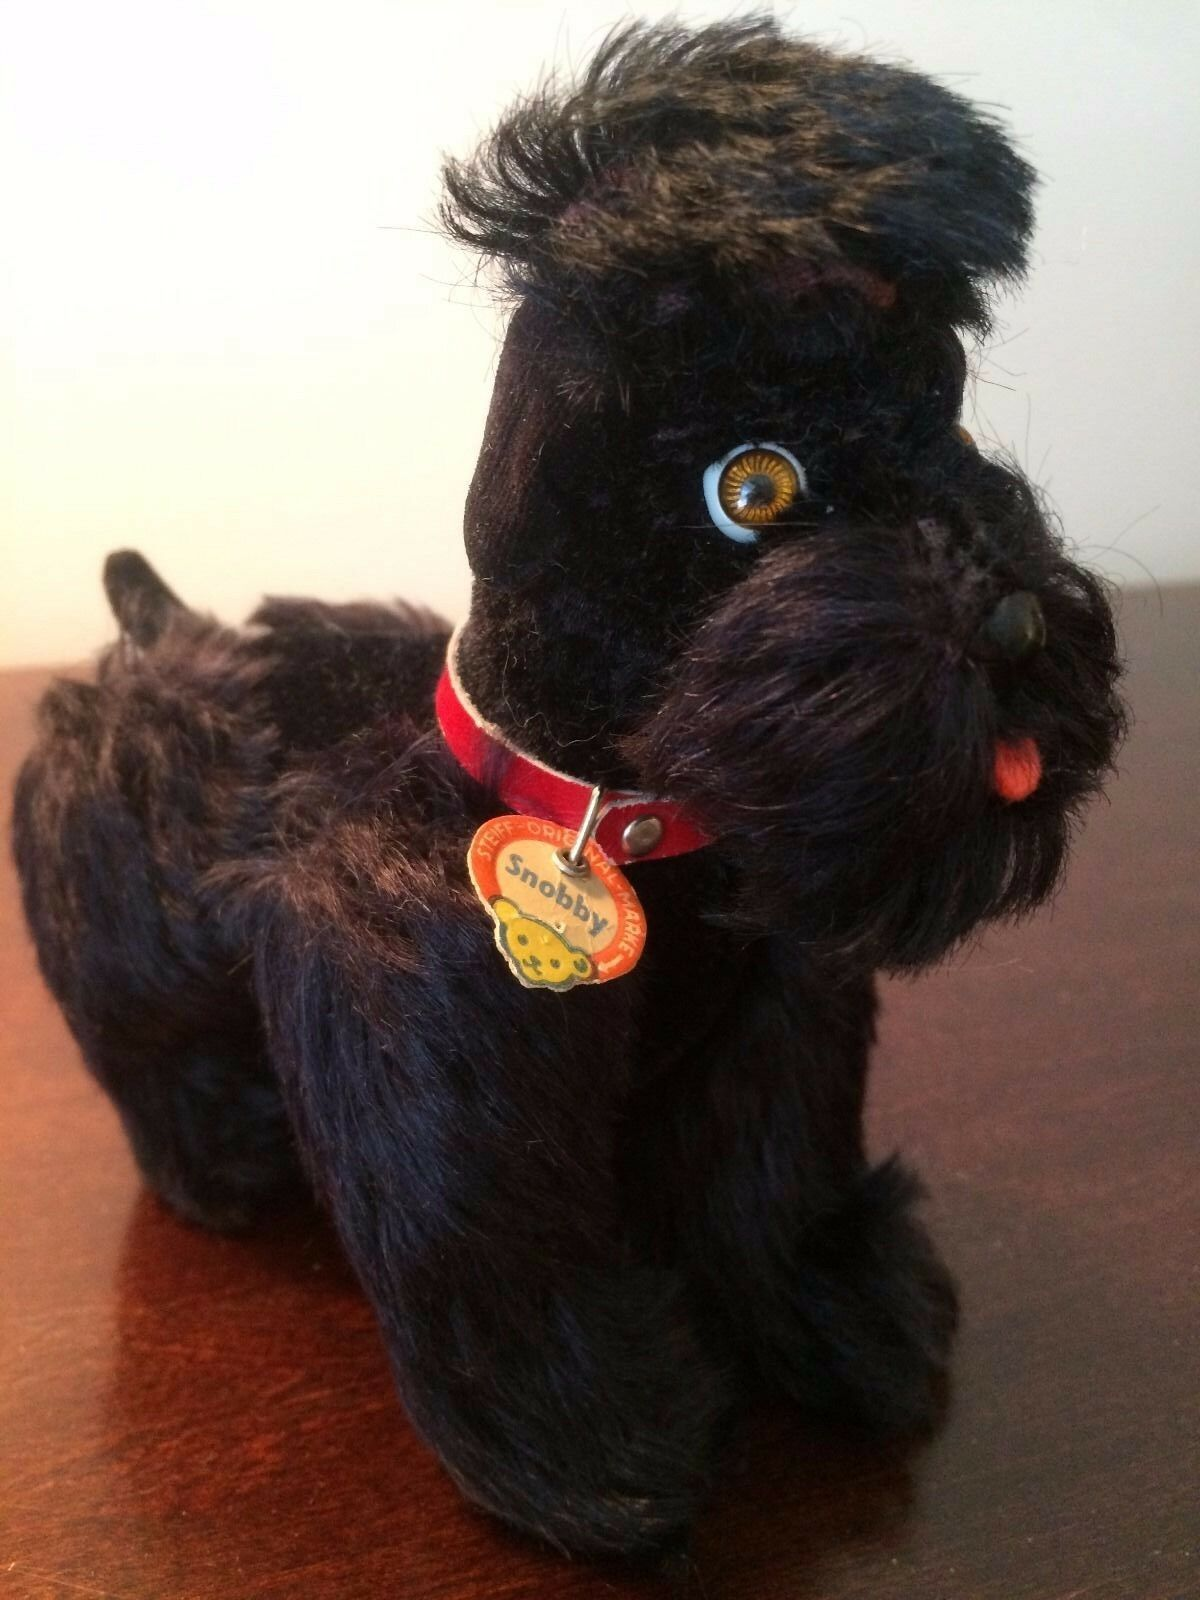 Vintage Steiff Jointed Poodle Snobby Dog 5  w Button, Ear Tag Chest Tag 1953-72